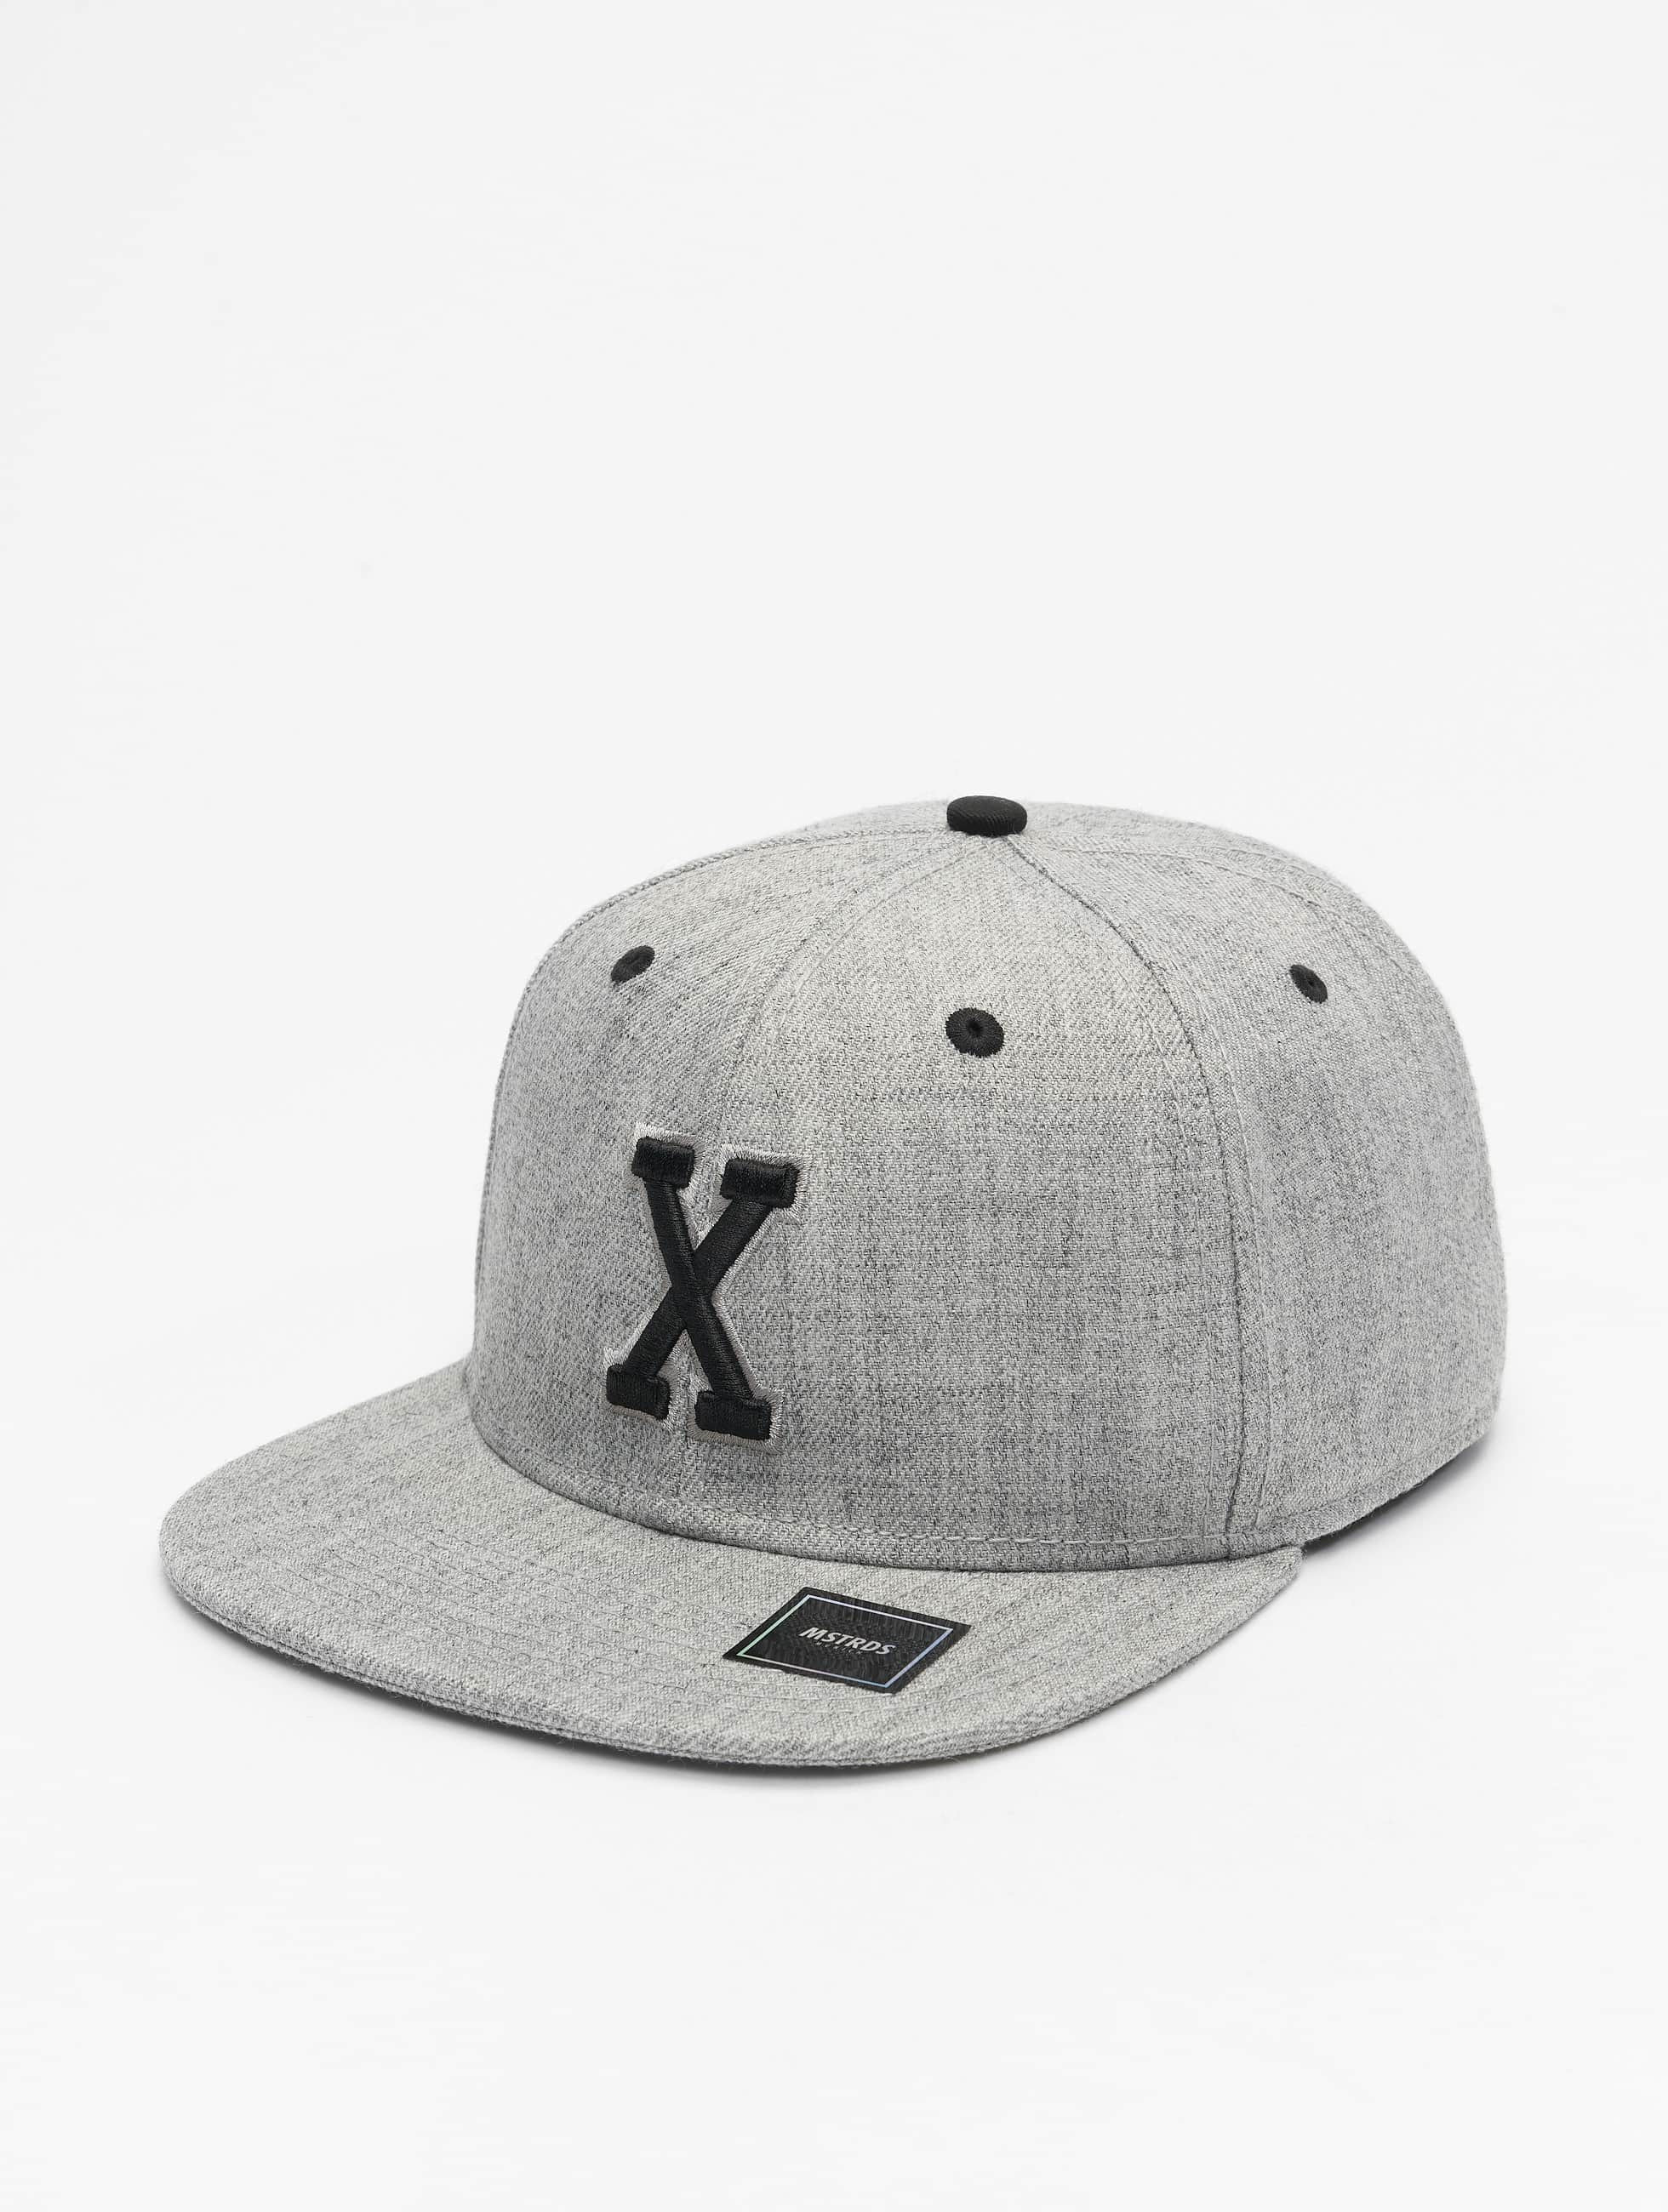 MSTRDS Snapback Cap X Letter gray